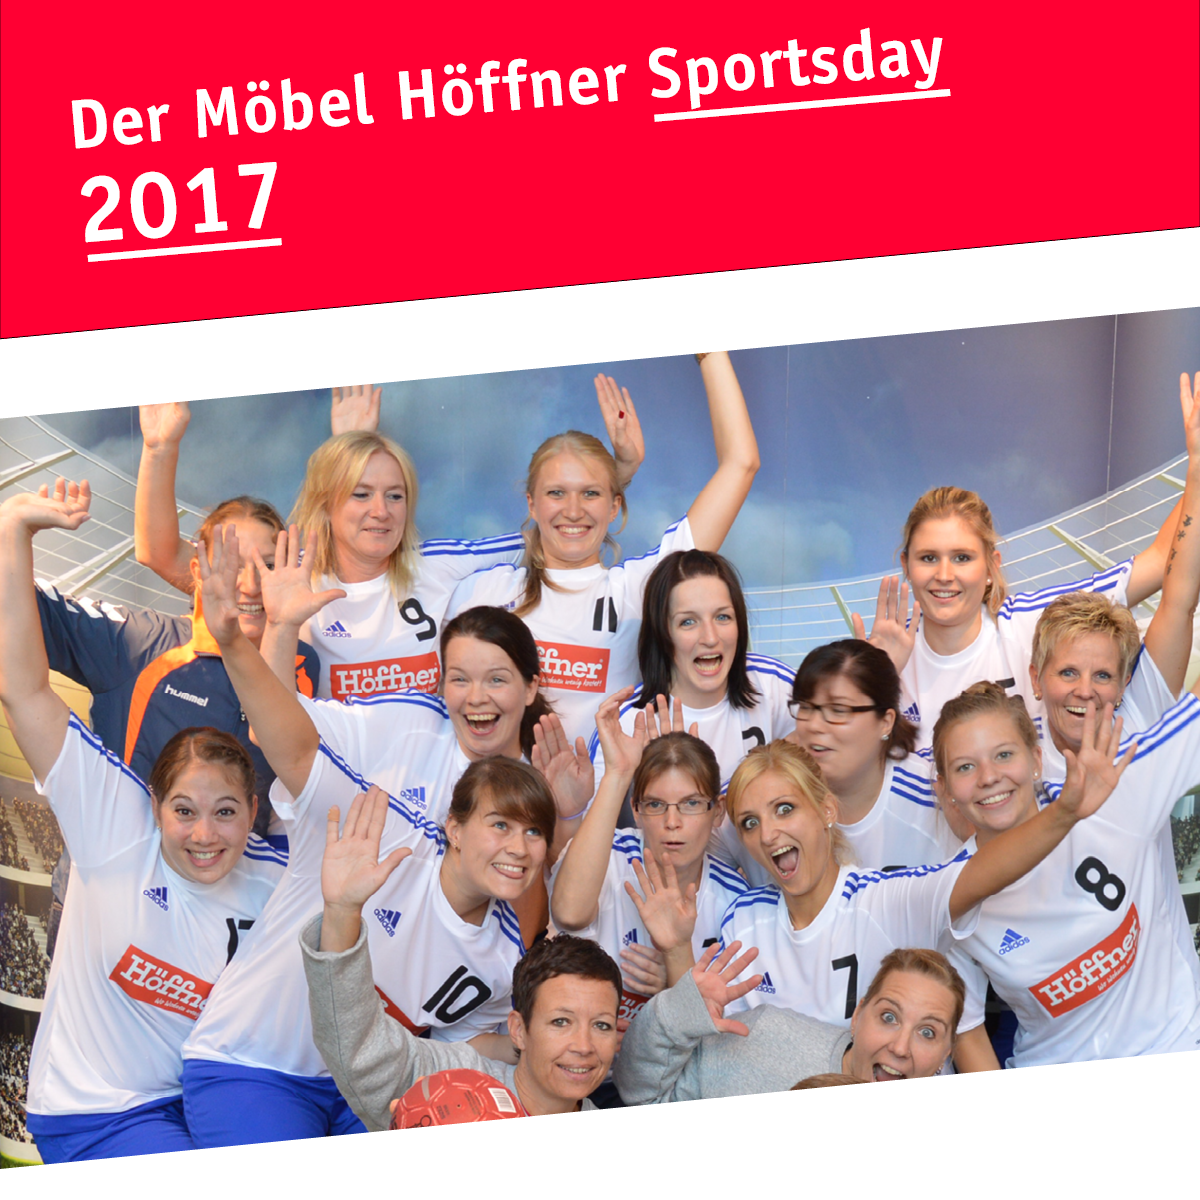 Höffner Sportsday In Rösrath Am 06052017 Möbel Höffner